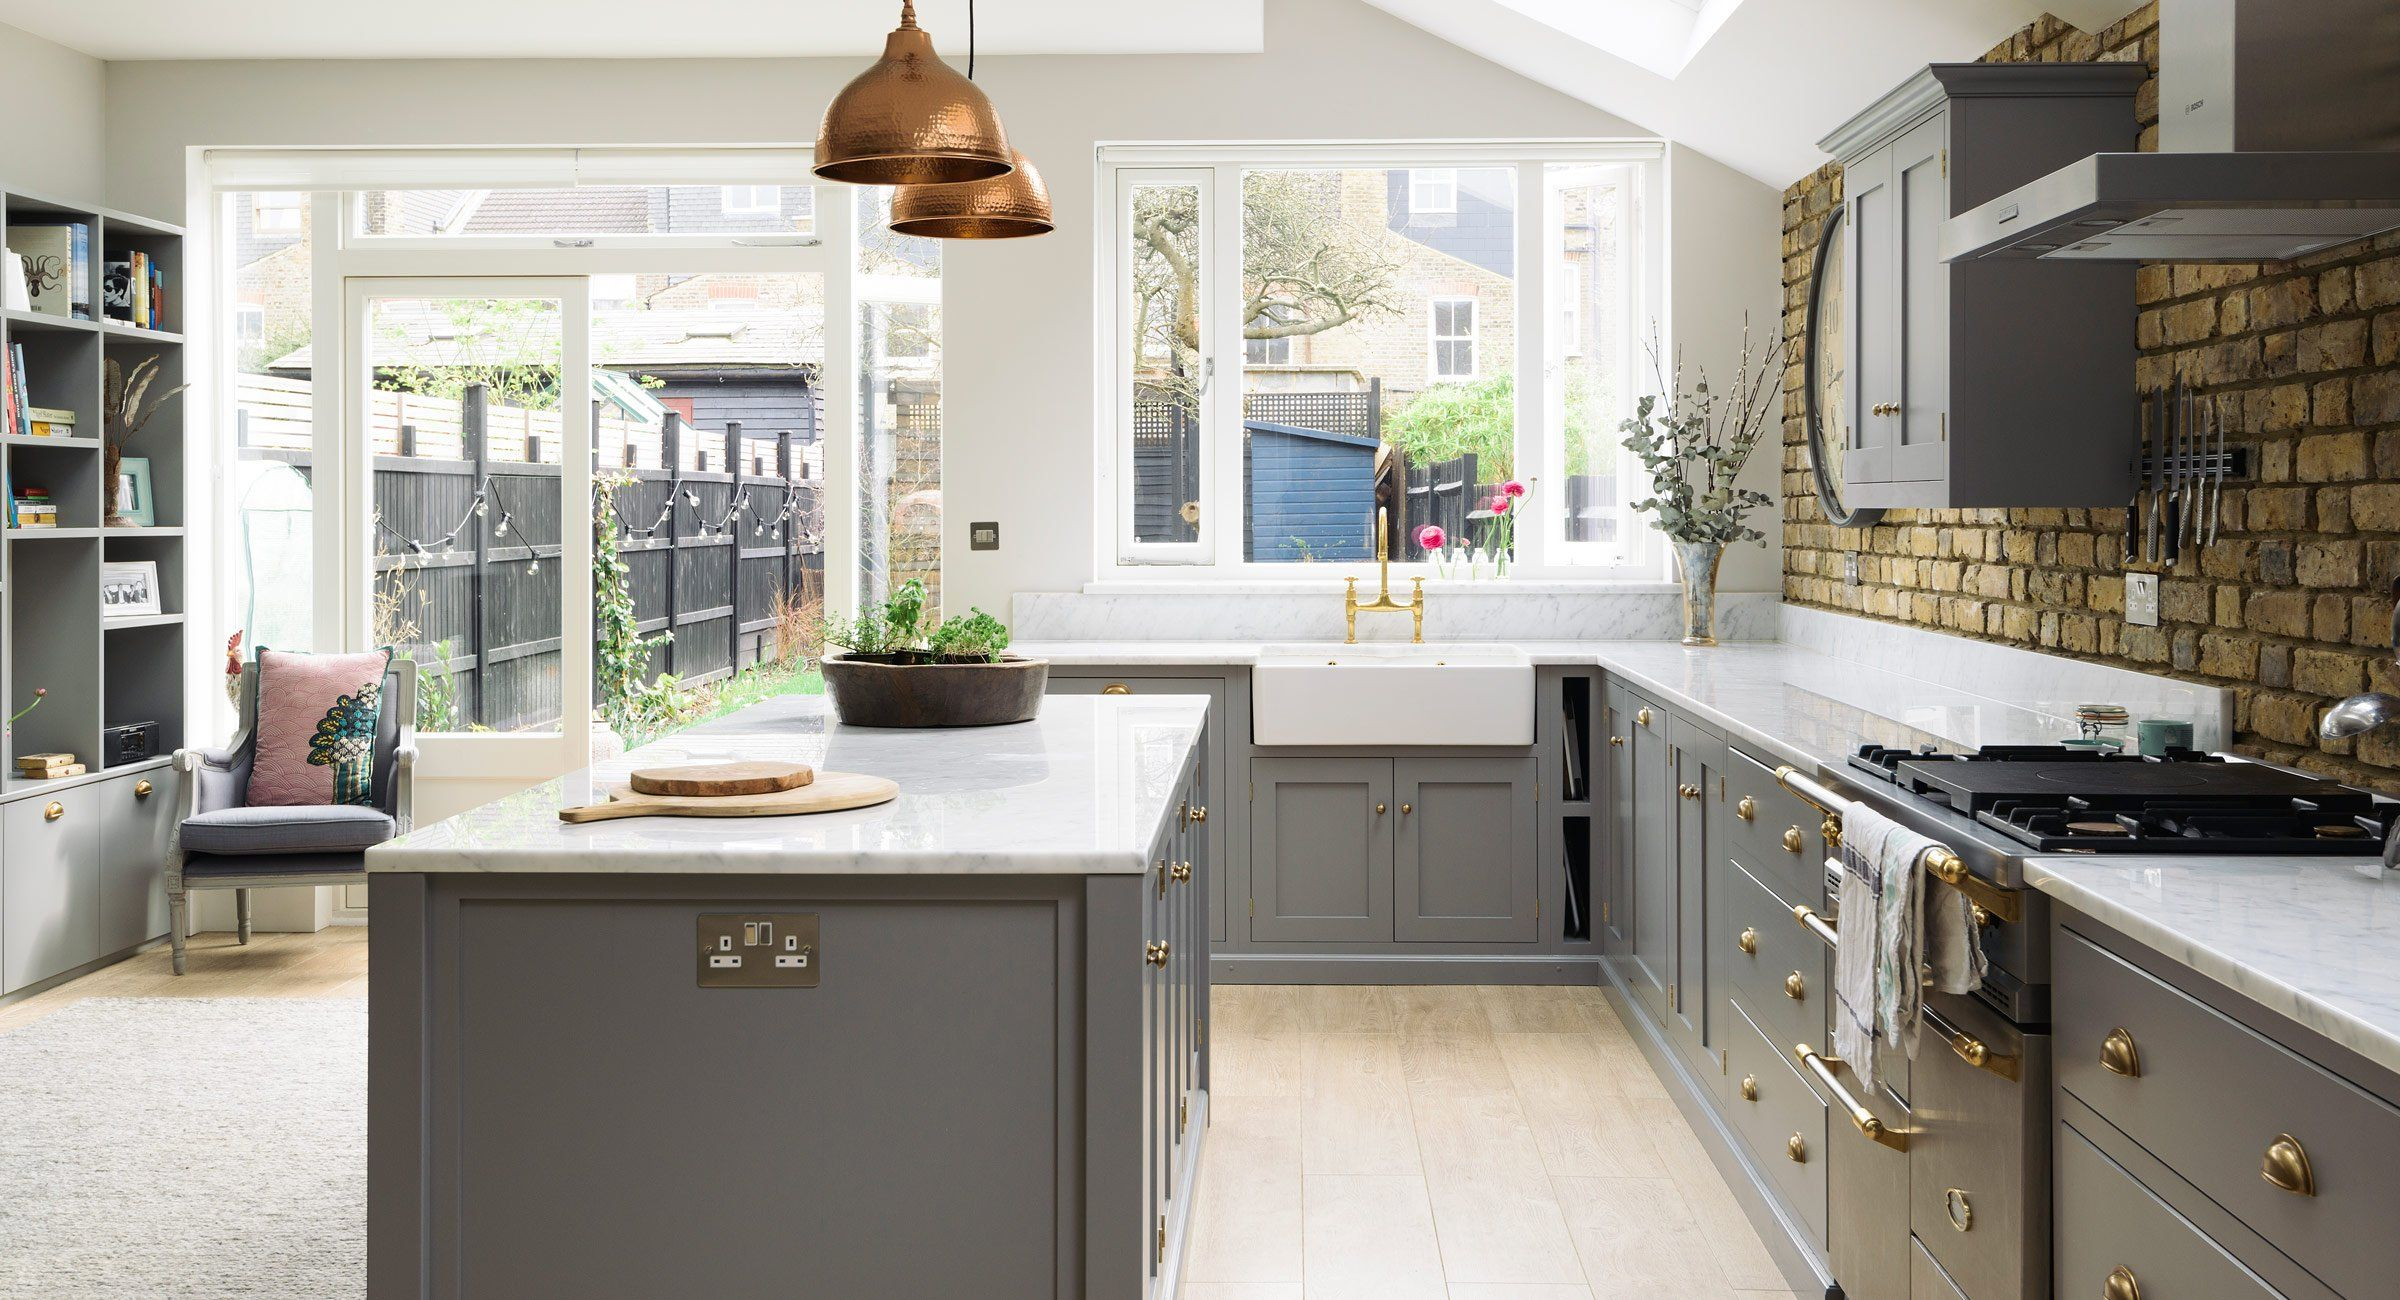 https://www.devolkitchens.co.uk/kitchens/shaker-kitchen/sw12-kitchen ...